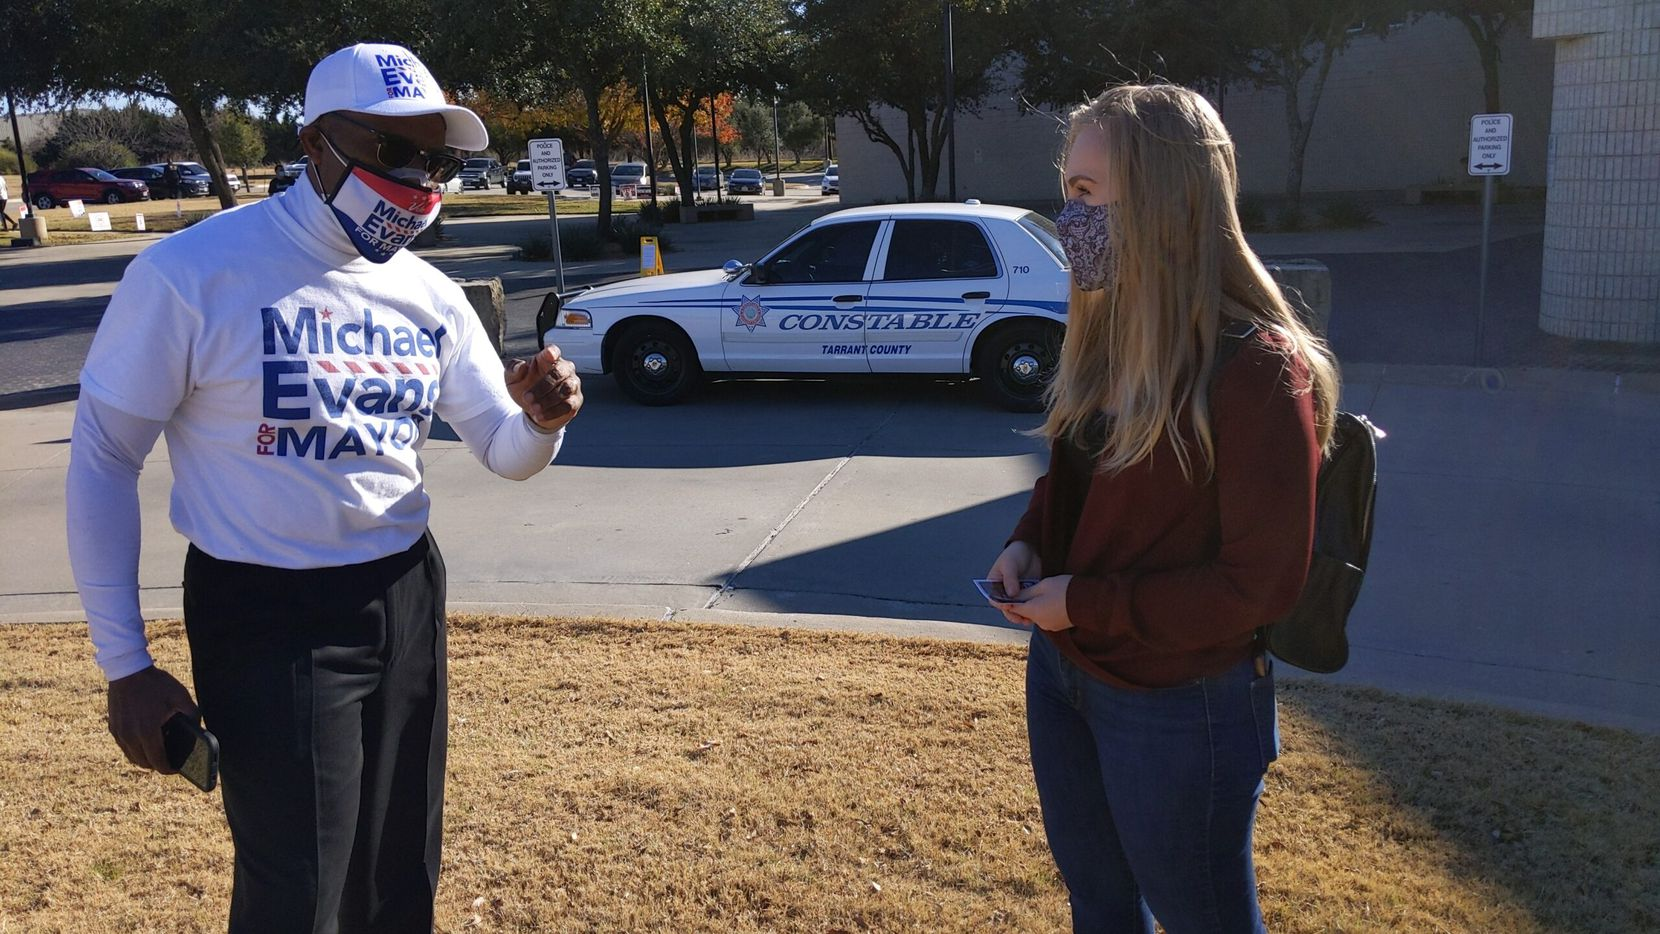 Michael Evans speaks to Mansfield voter Courtney Hester at the Tarrant County Sub-Courthouse on Tuesday, Dec. 8, 2020, the day he was elected mayor in a runoff election.